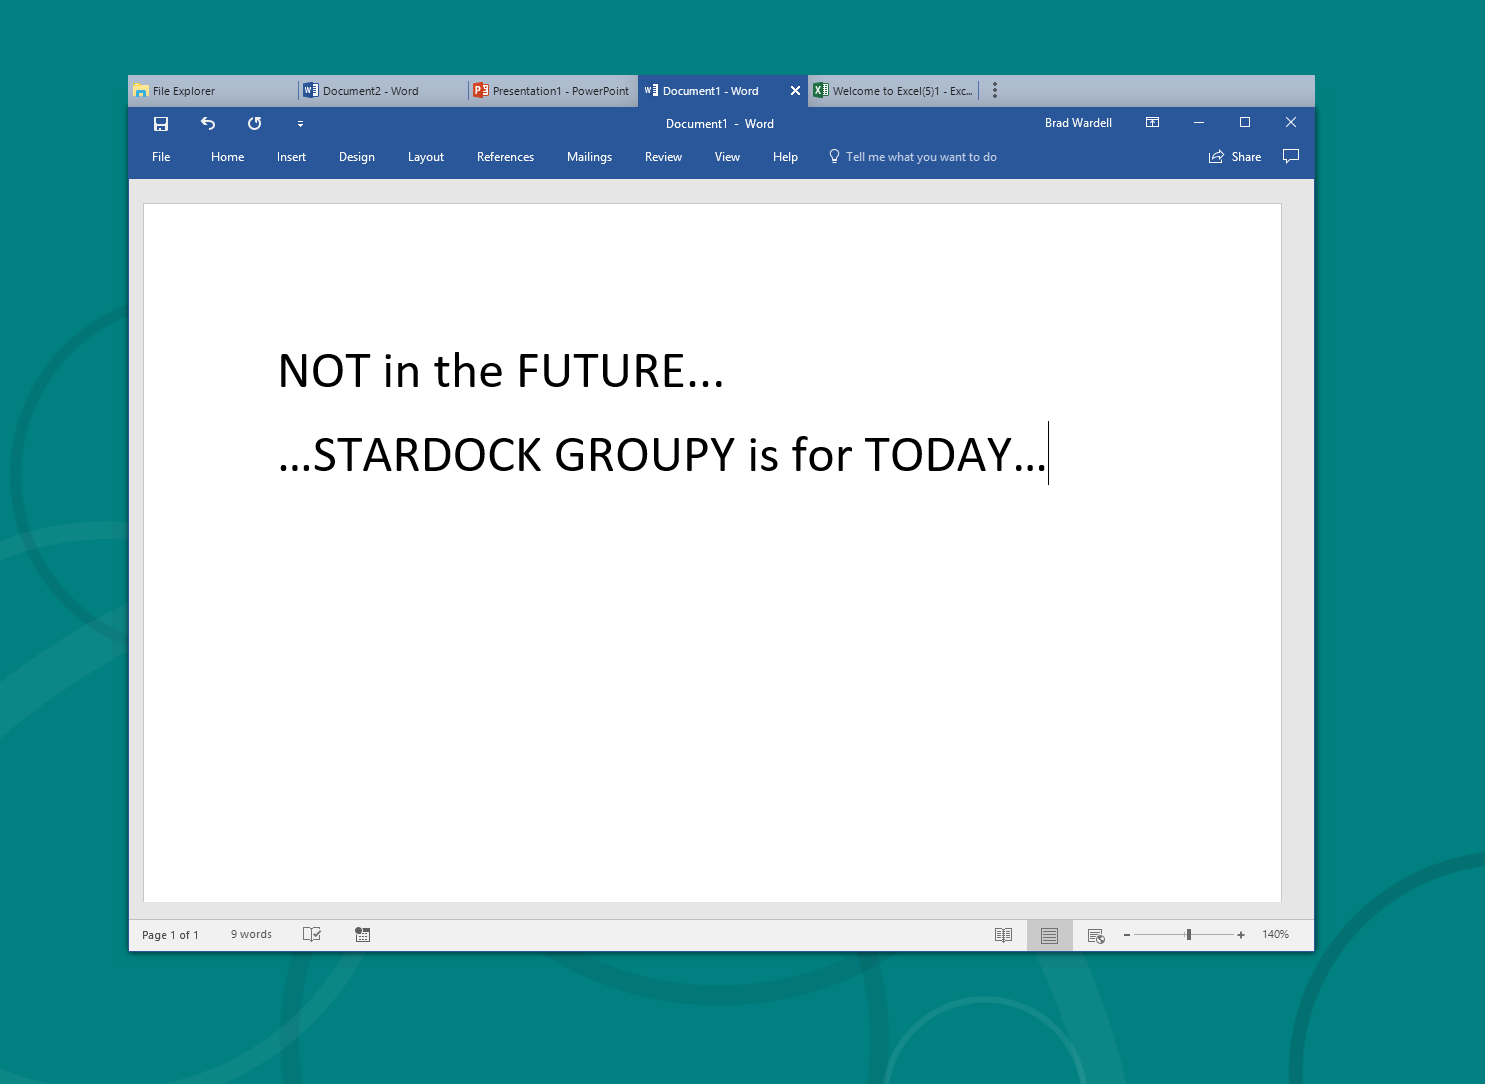 Stardock's Groupy may change the way we use the PC » Forum